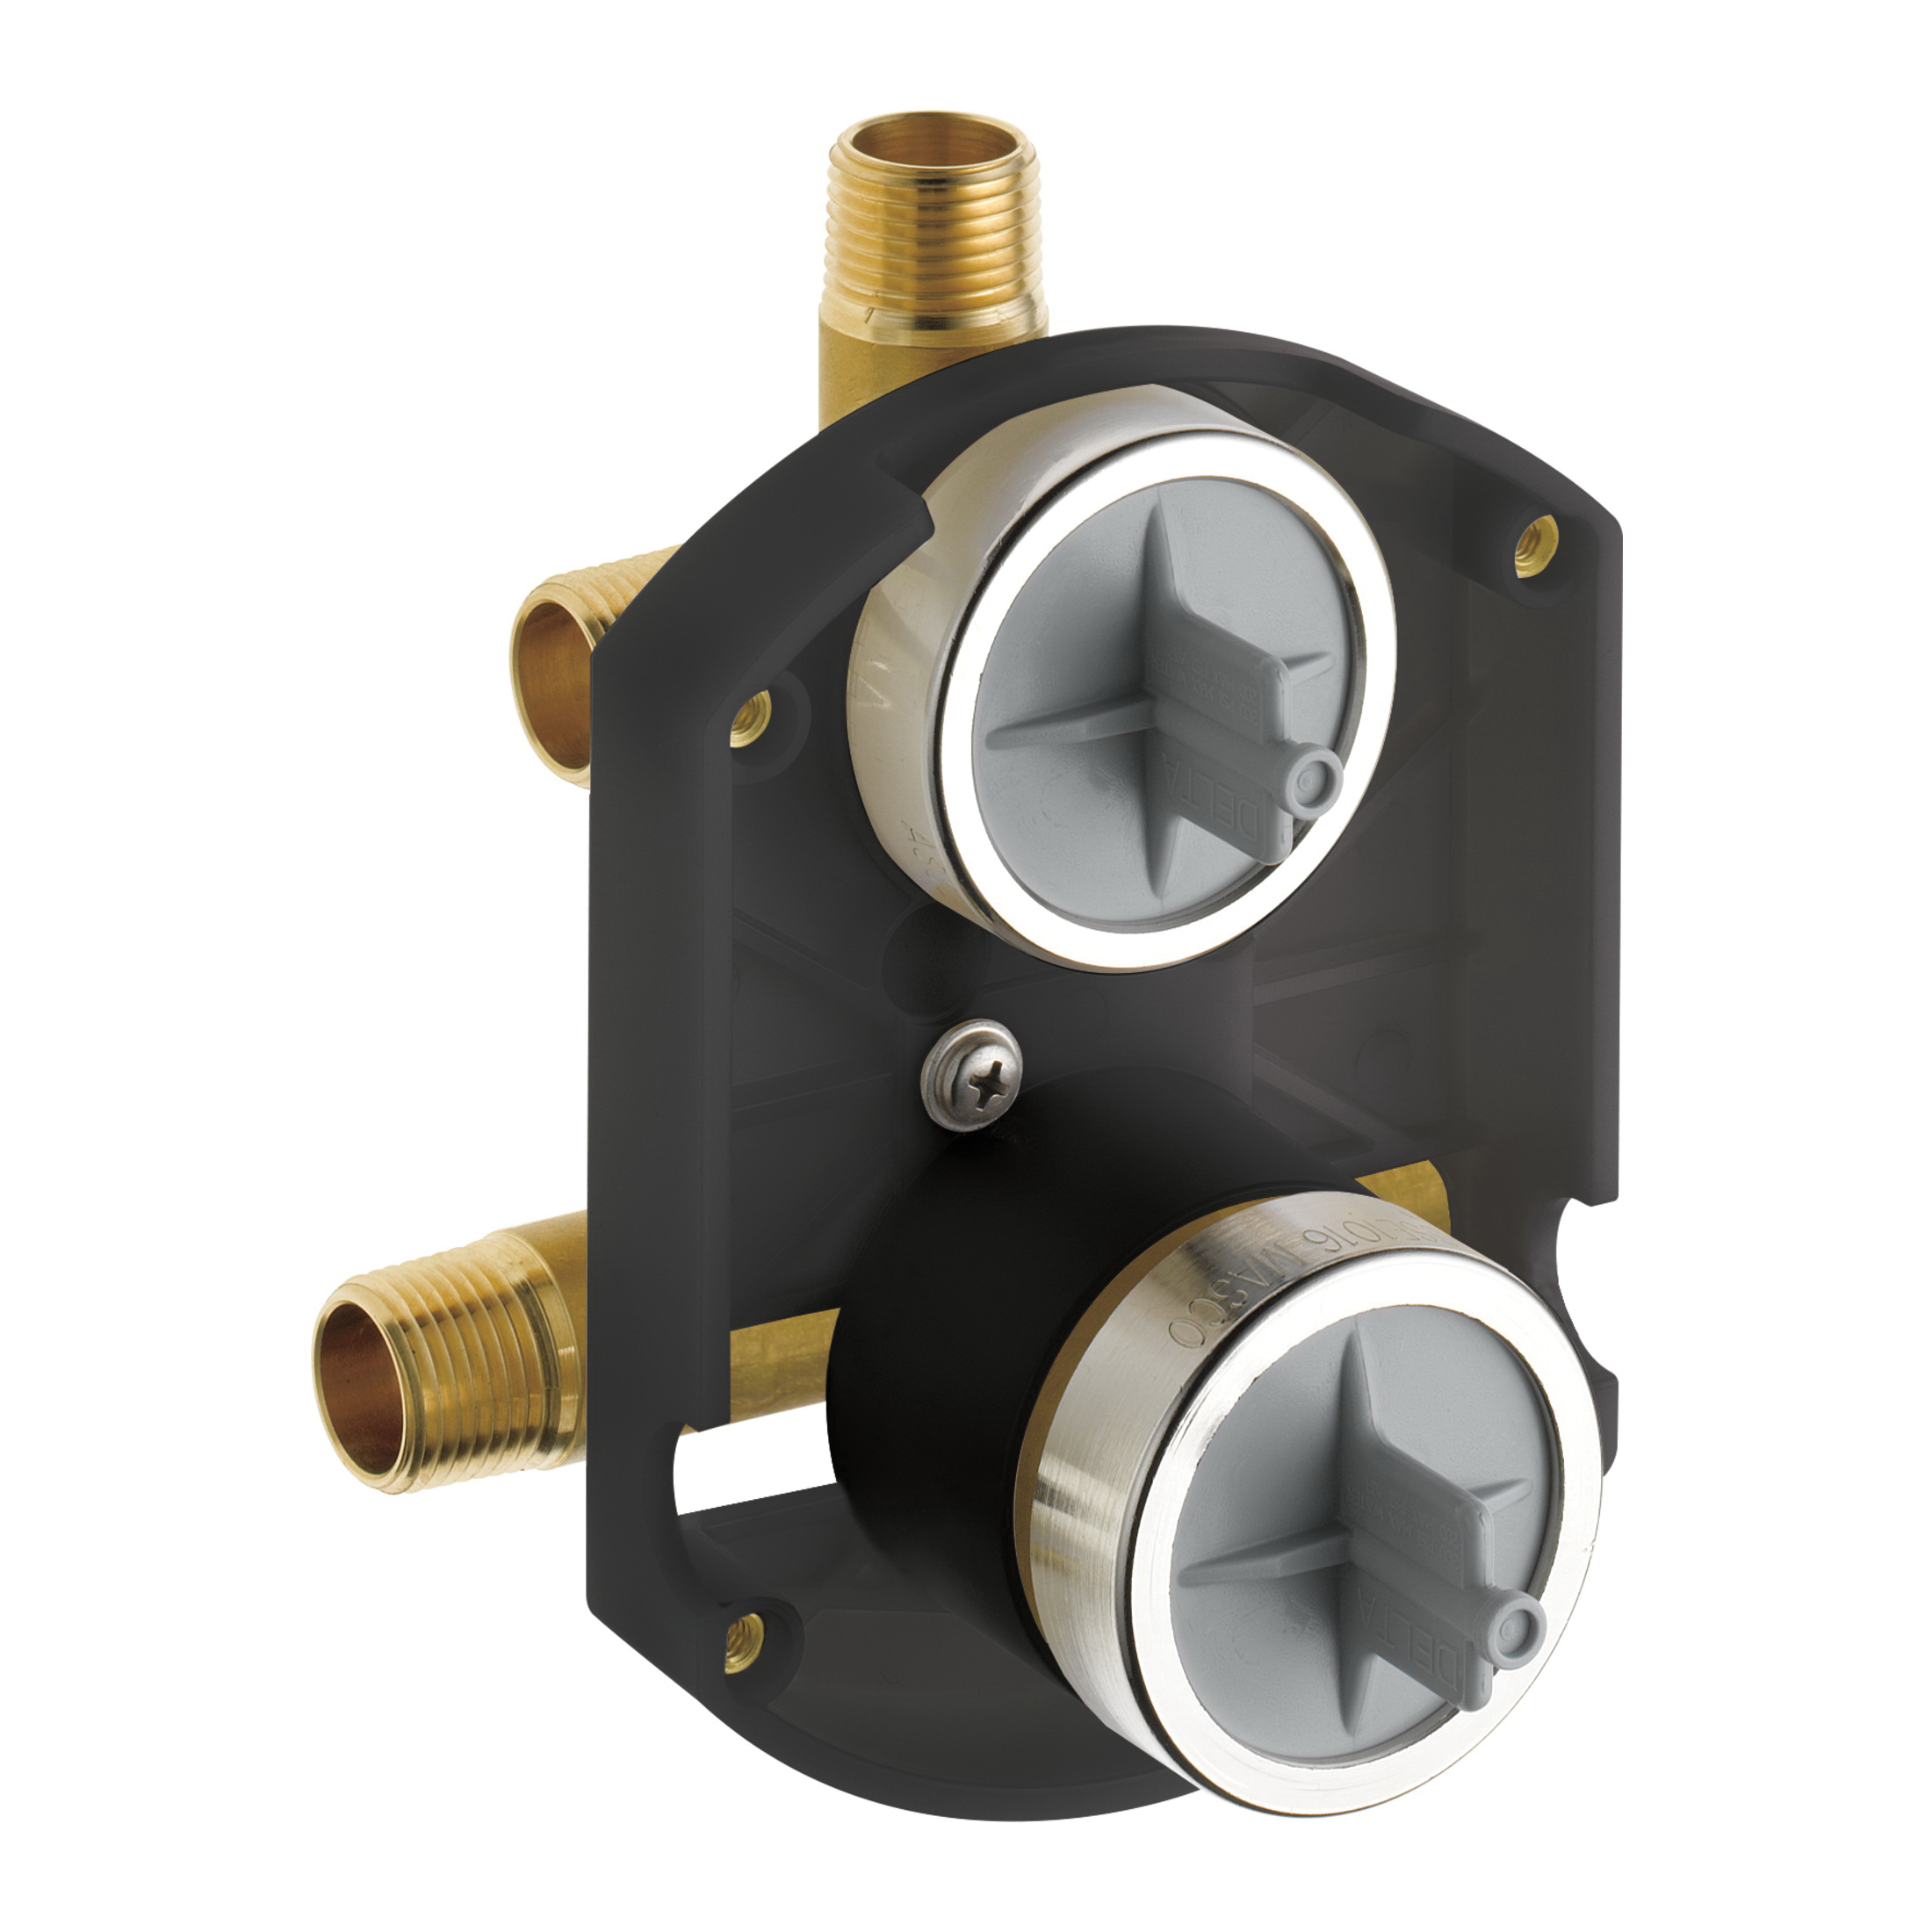 DELTA® R22000 MultiChoice® Universal Diverter Rough-In Valve, Forged Brass Body, Domestic